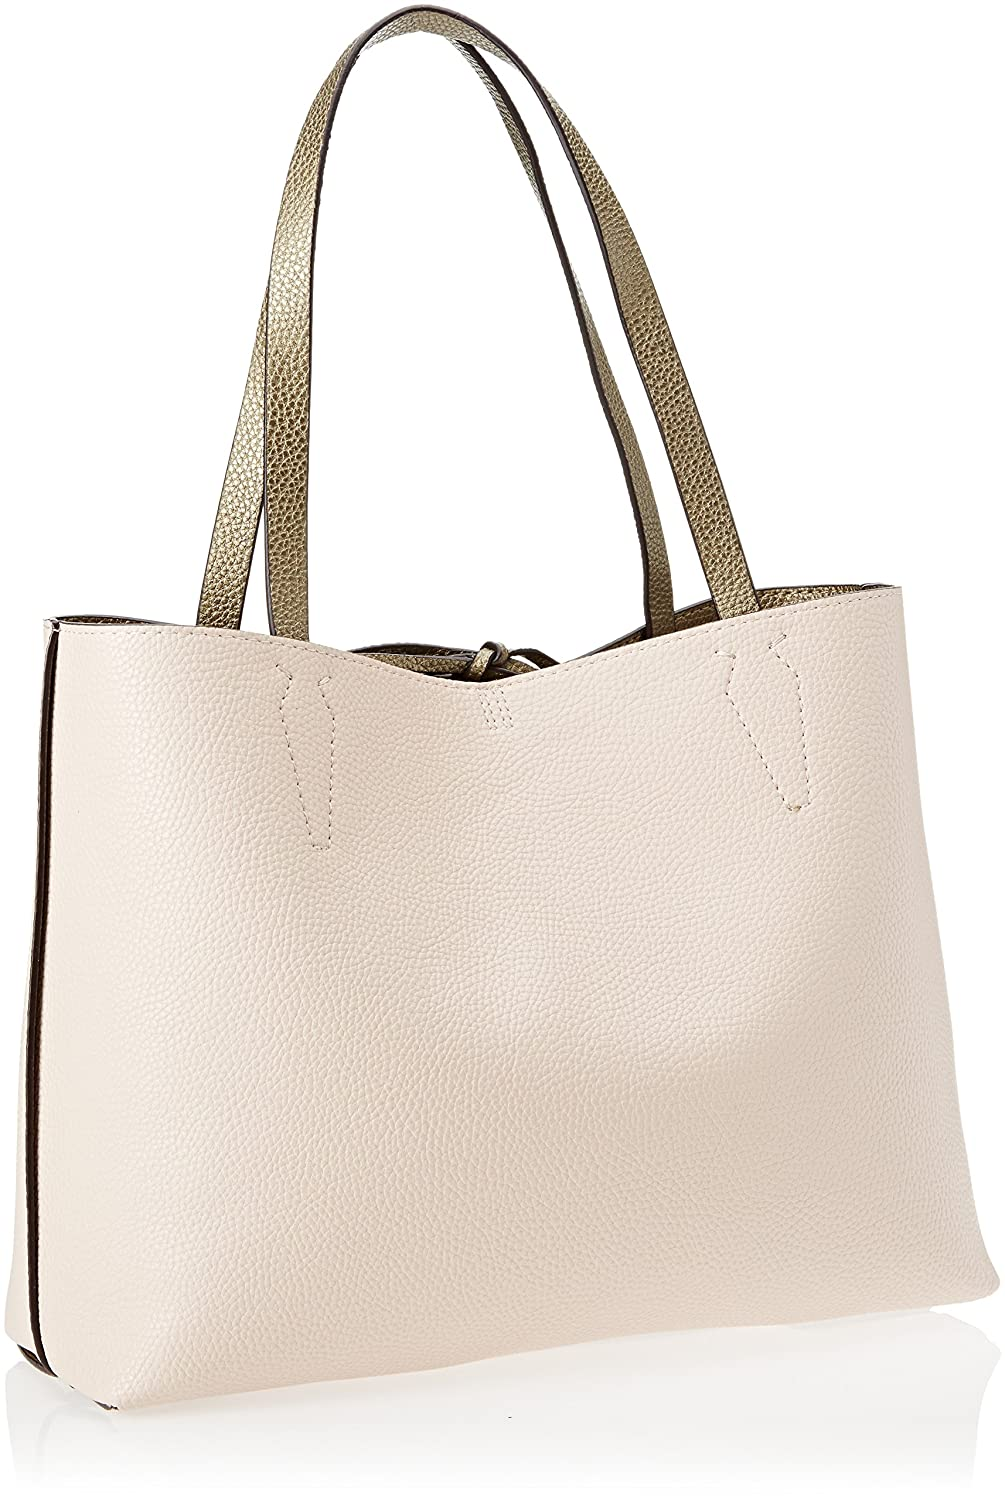 Hwmp6422150, Womens Top-Handle Bag, Verde (Olive Nude), 12.5x27x42.5 cm (W x H L) Guess